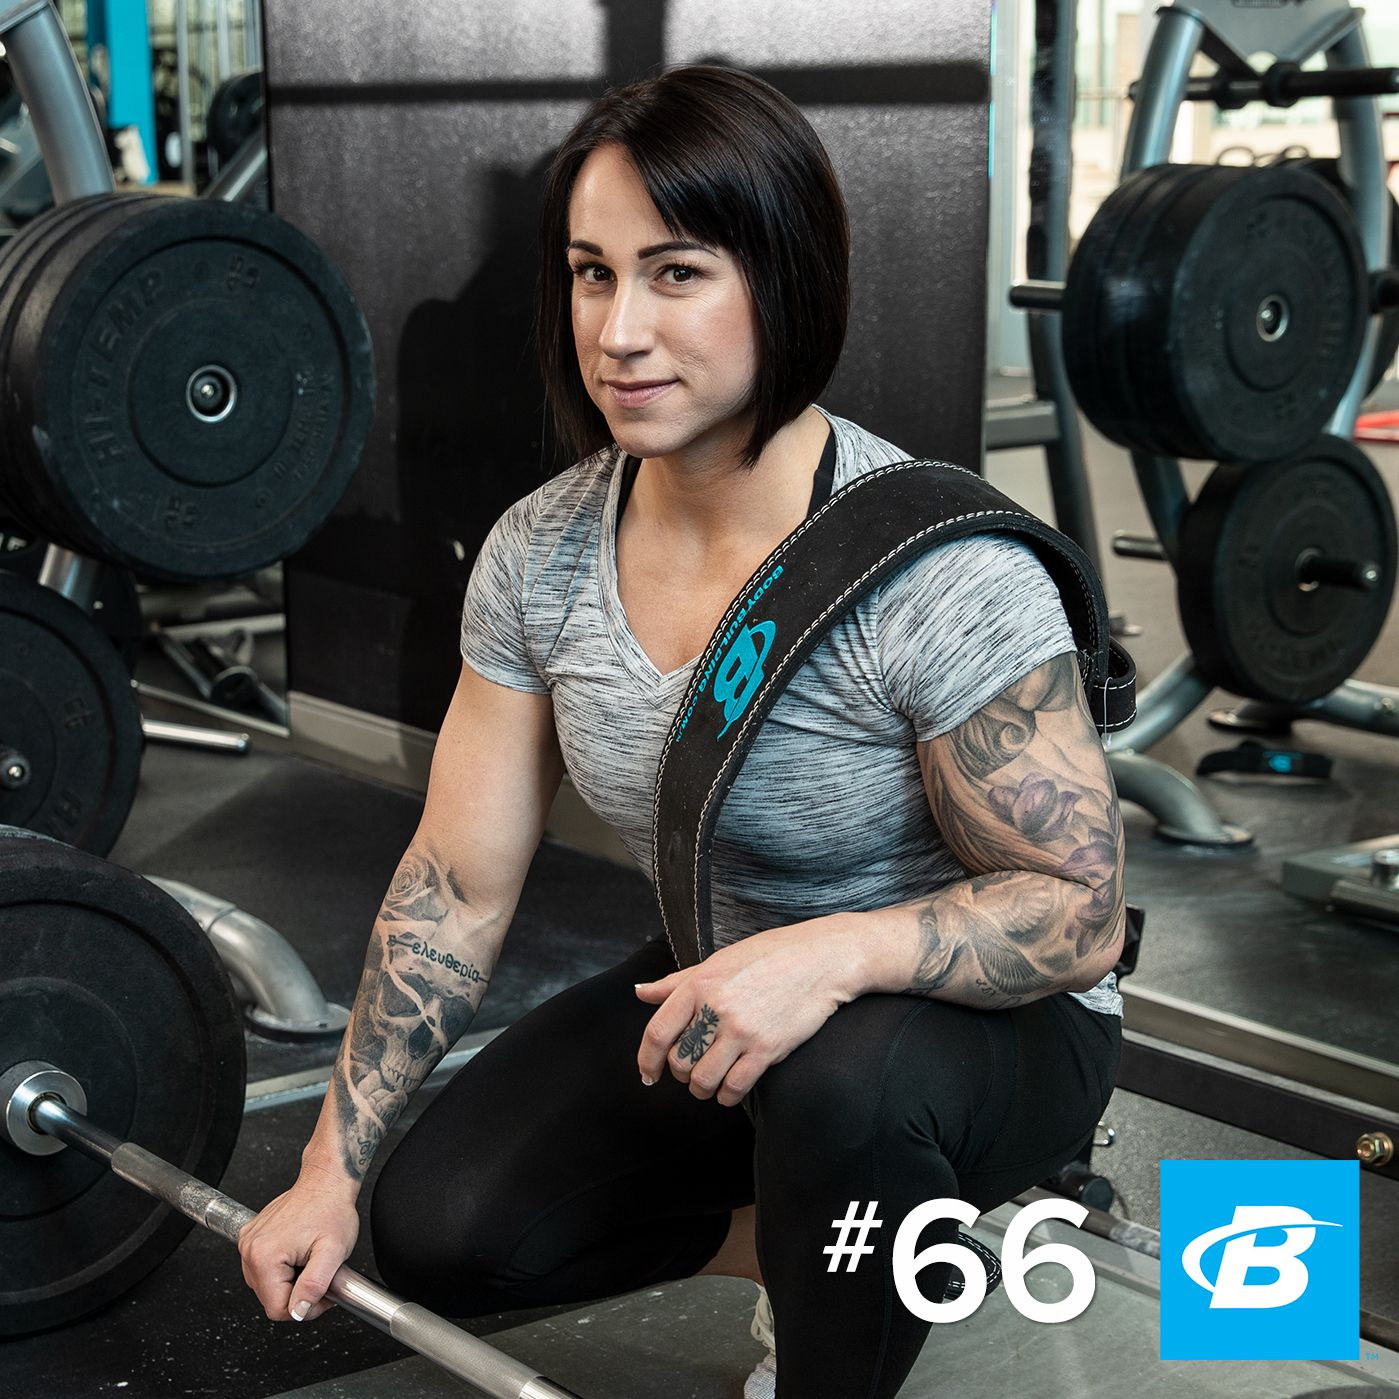 Episode 66: Laura Phelps - ''If You Let Me Lift, I Will